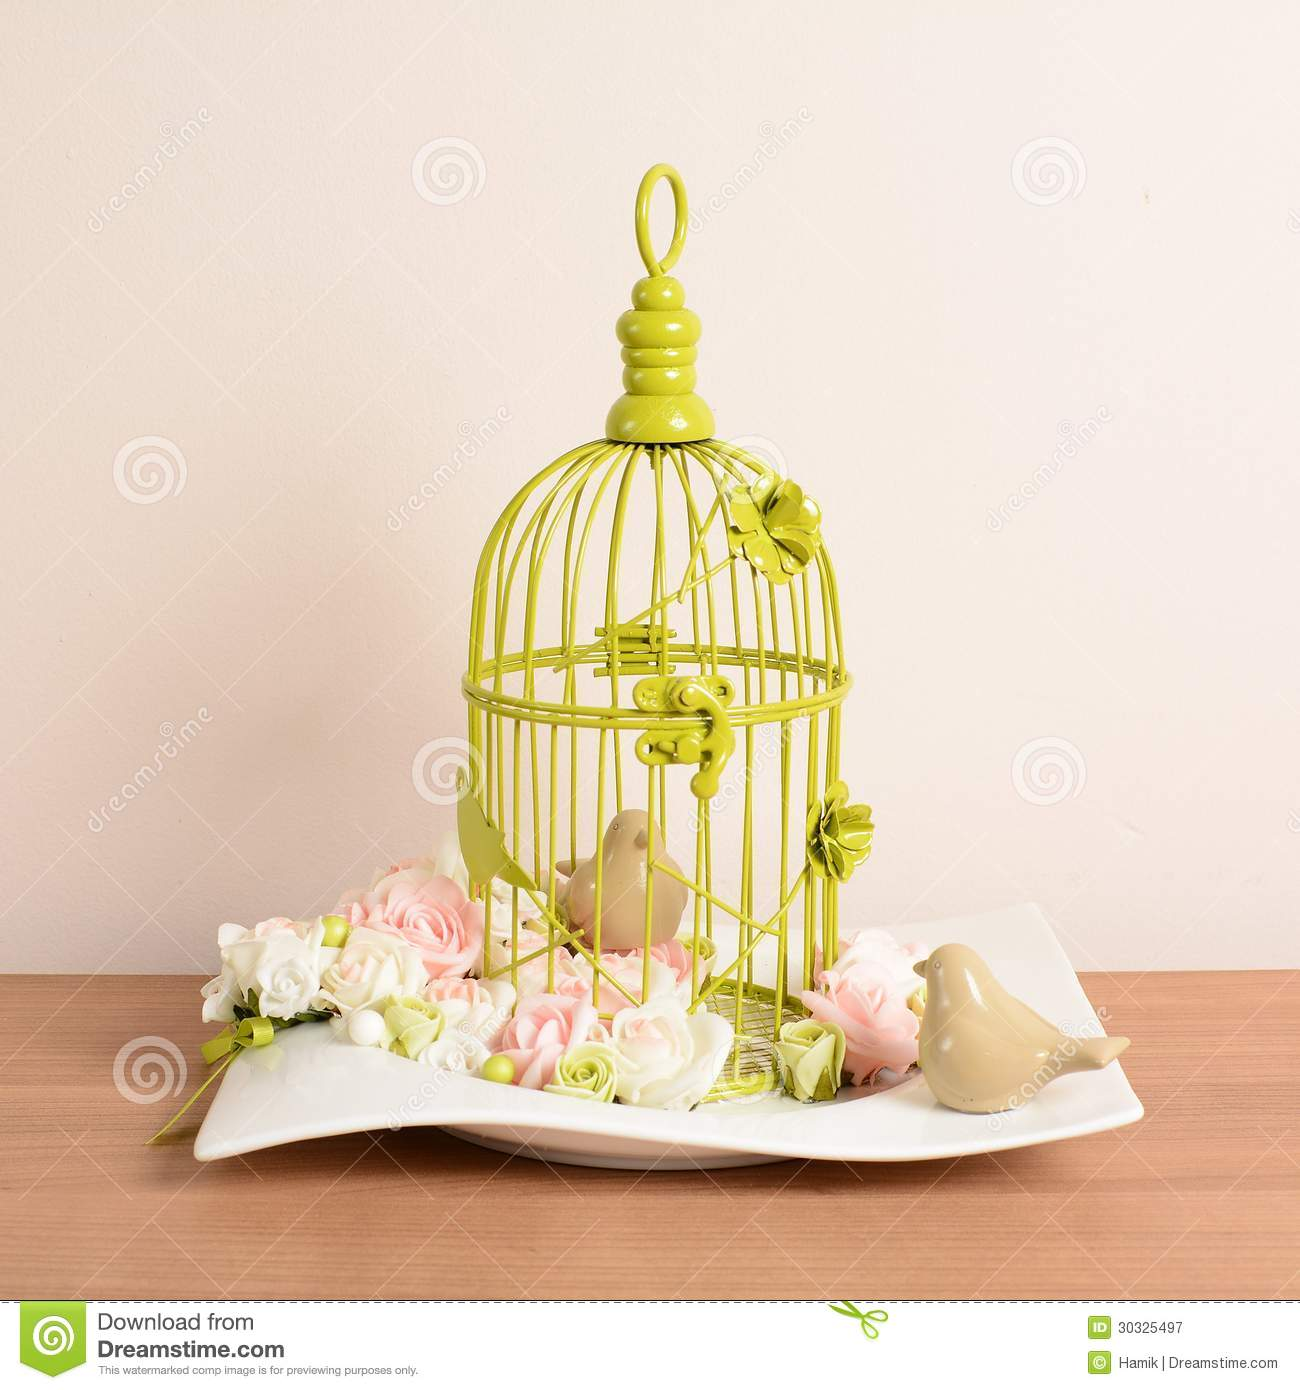 Home decoration royalty free stock photography image for Artificial birds for decoration